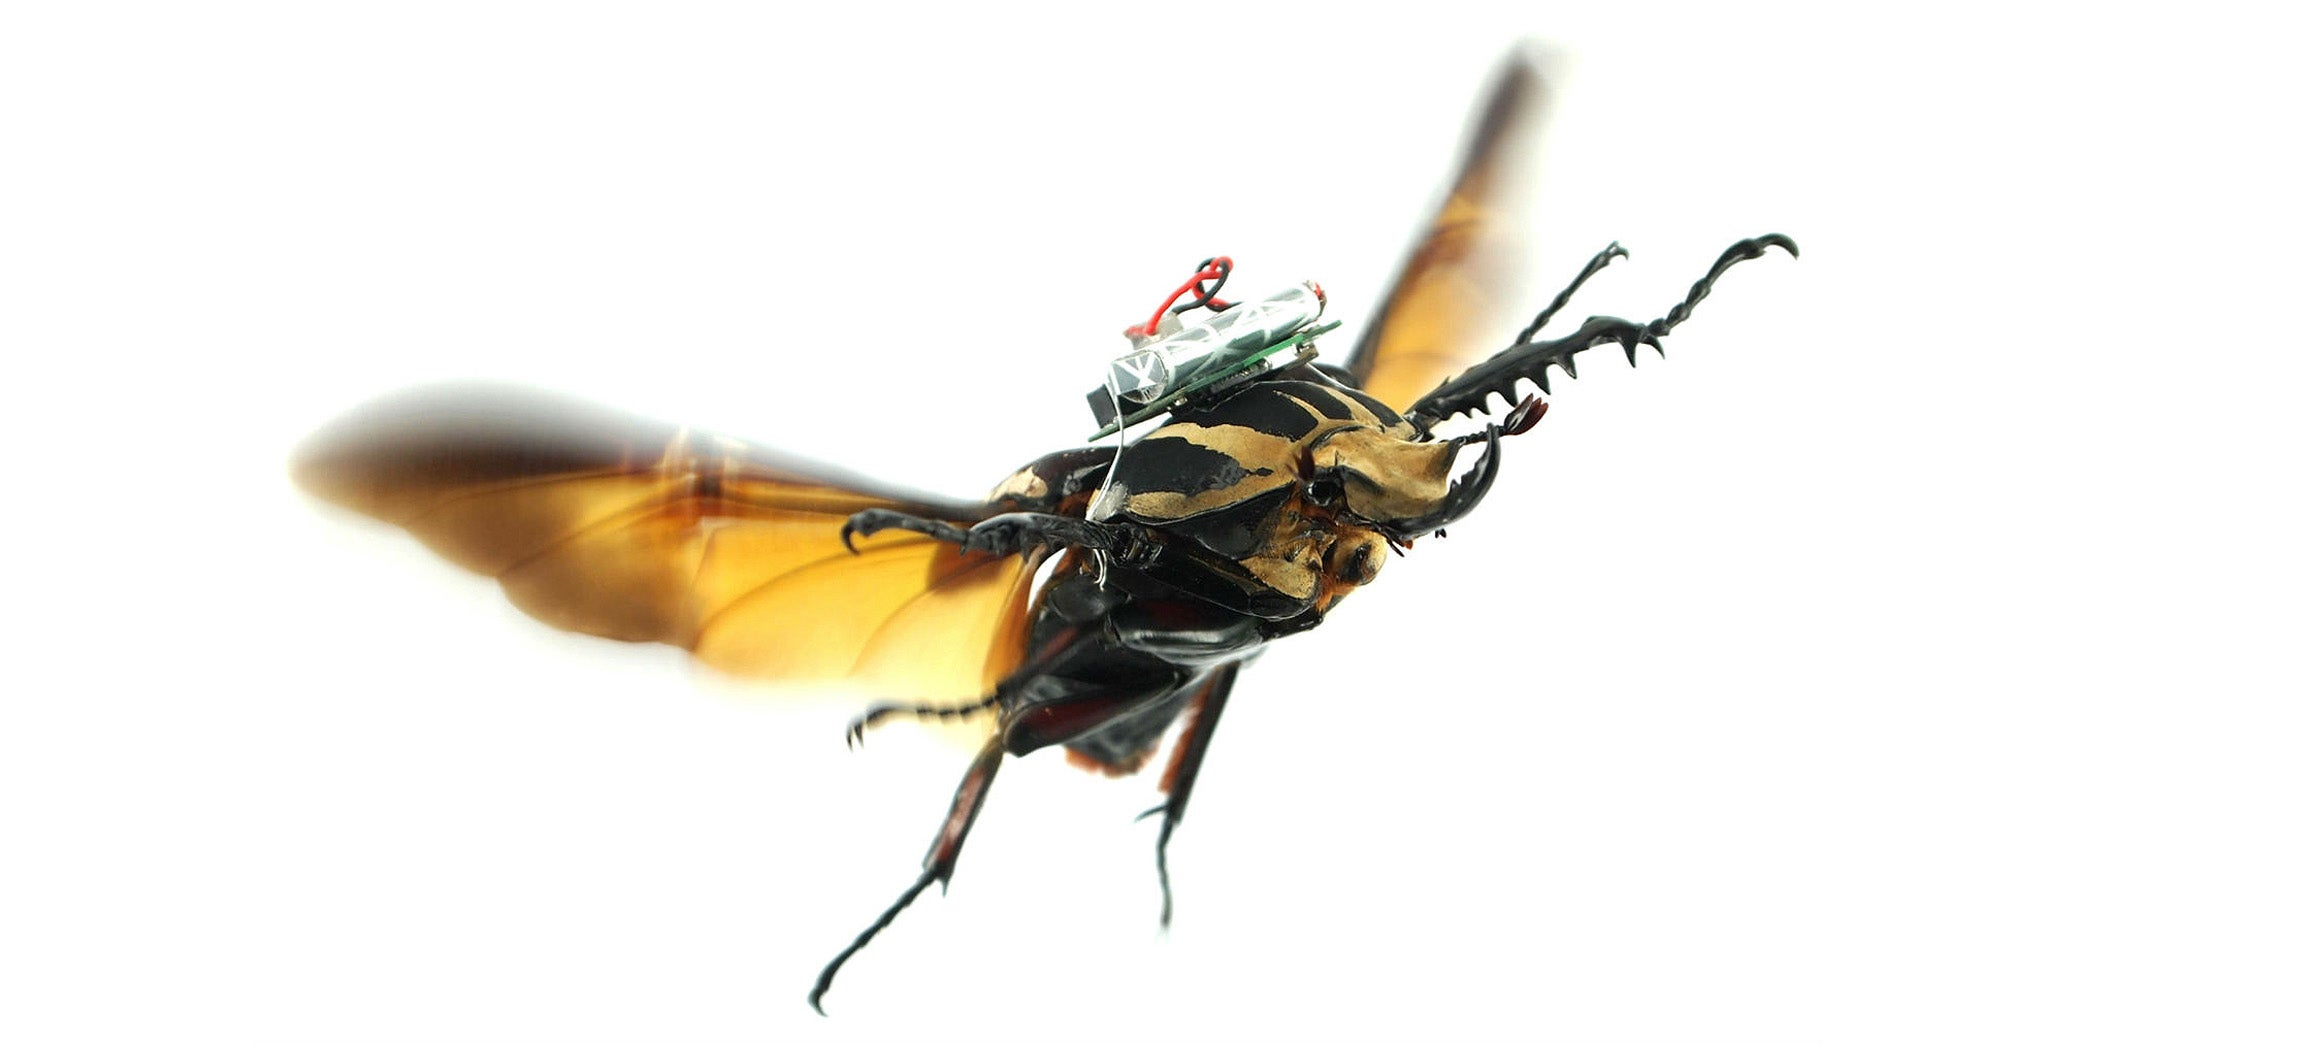 Mad Scientists Think Their Remote-Controlled Cyborg Beetle Could Replace Drones